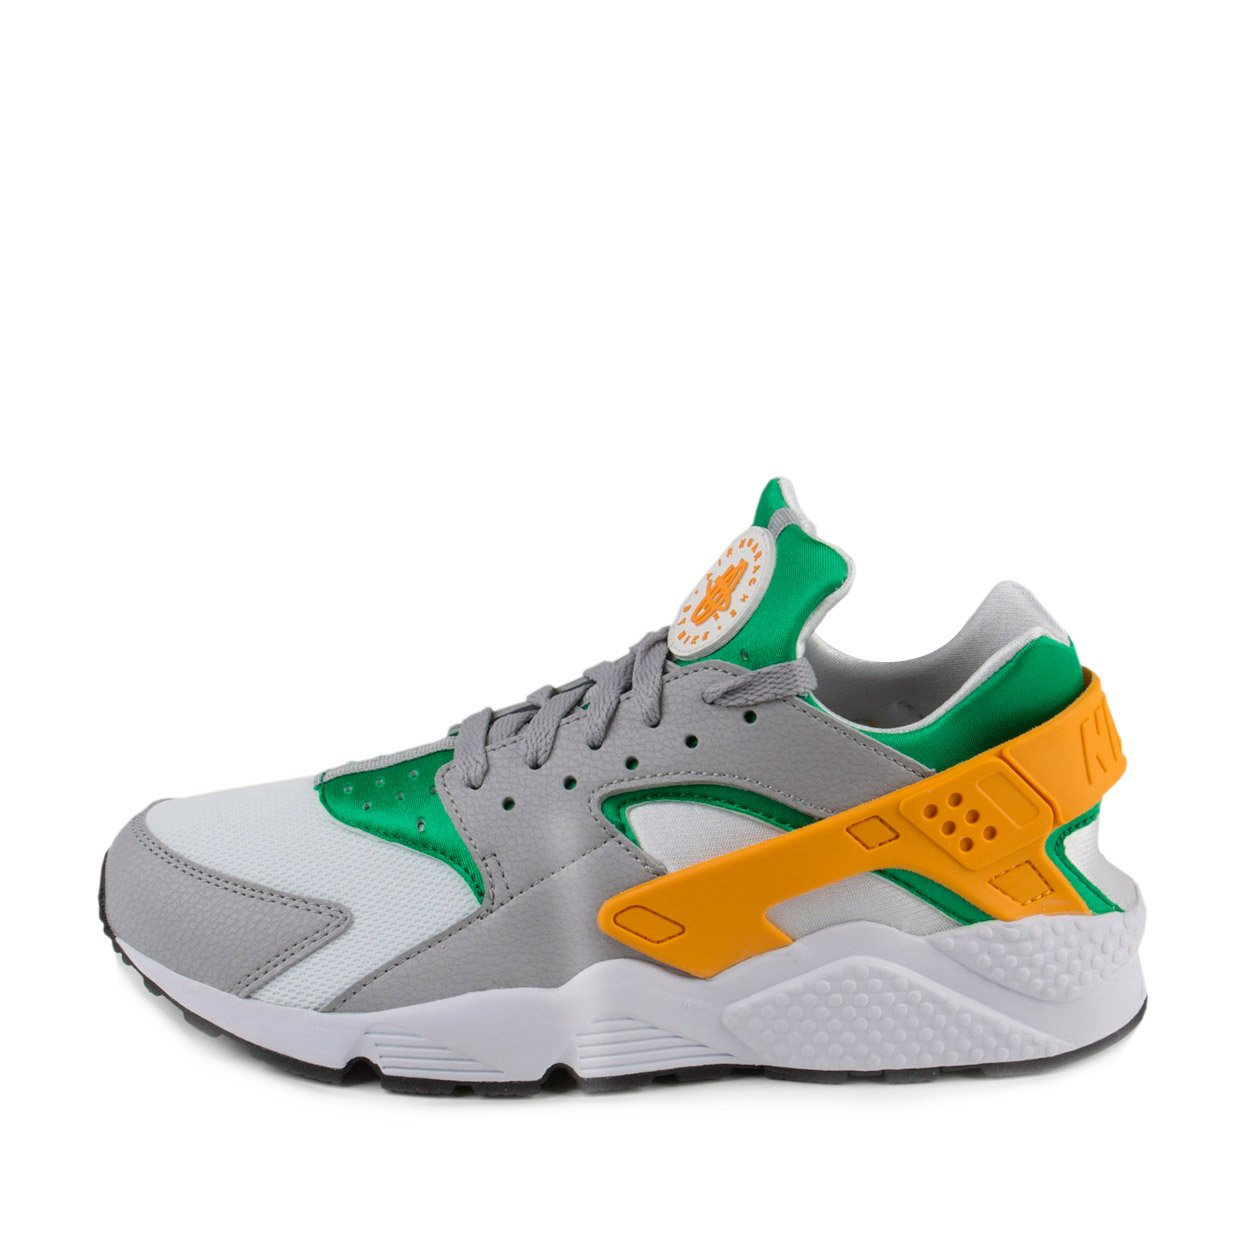 790a052f02bf Galleon - Nike Mens Air Huarache Lucid Green University Gold-Wolf Grey  Leather Size 11